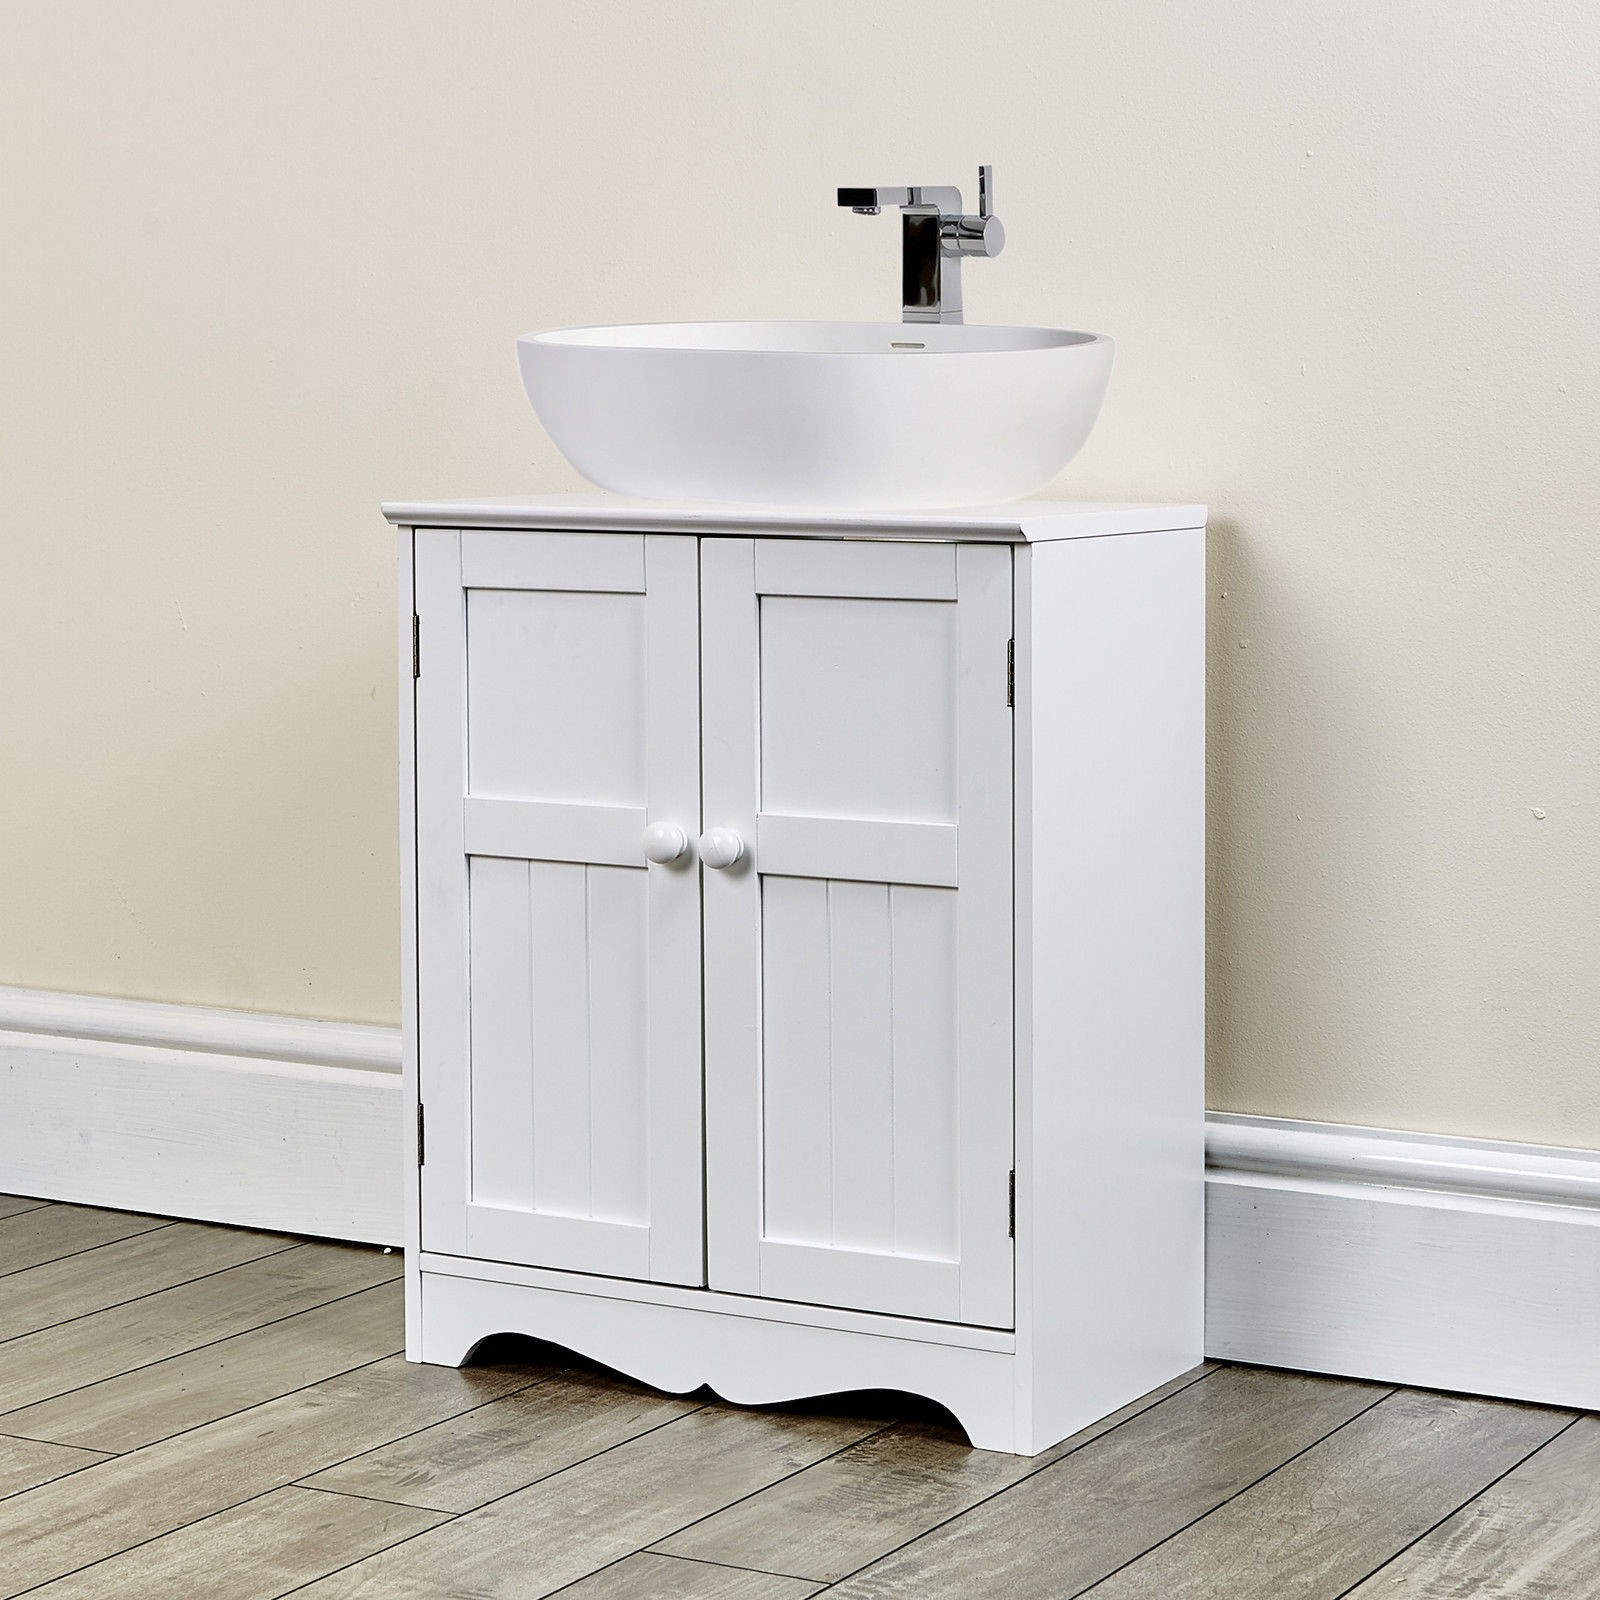 Storage Units Bathroom: Oxford White Under-Sink Storage Unit Abreo Home Furniture